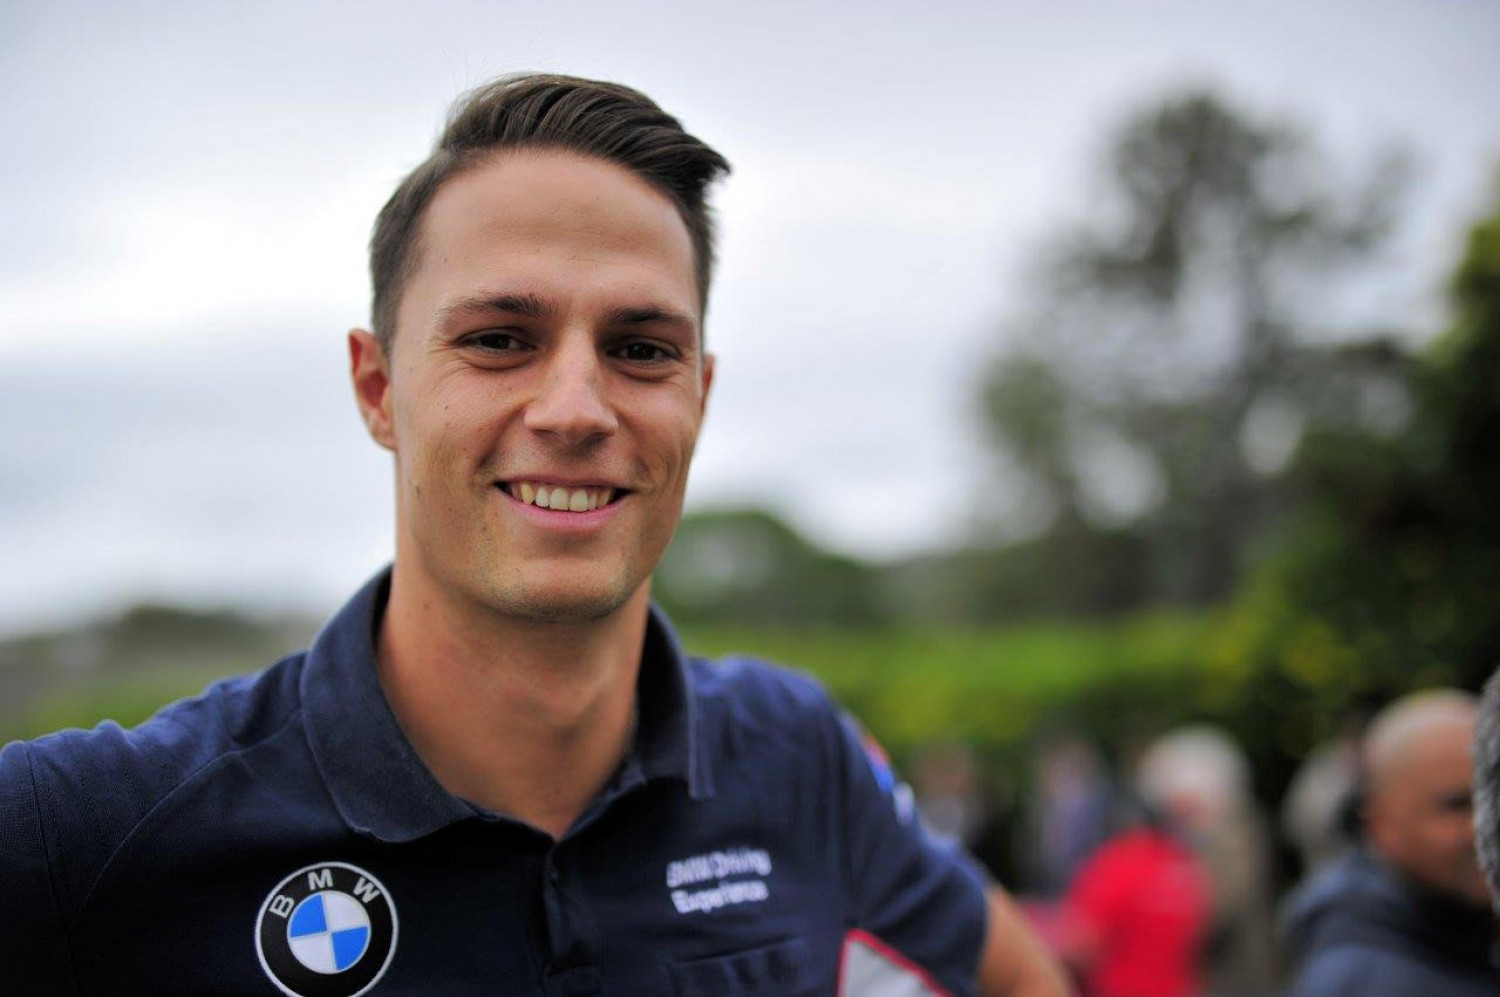 Boutsen Ginion Racing adds Gennaro Bonafede to BMW line-up for Total 24 Hours of Spa